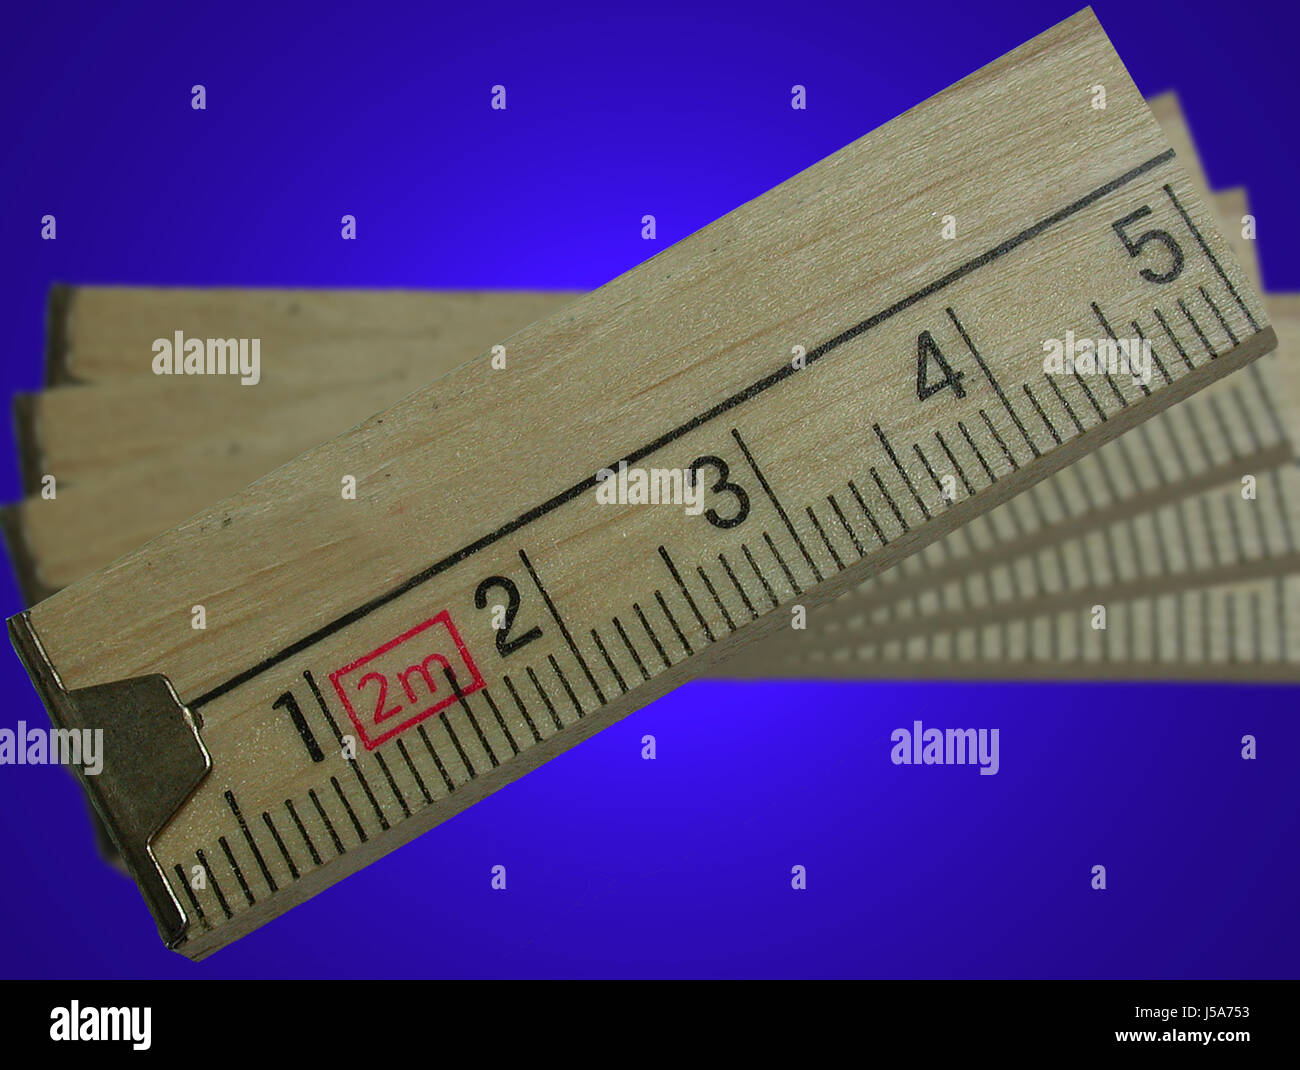 tool build five measured sured measure centimeter business dealings deal - Stock Image